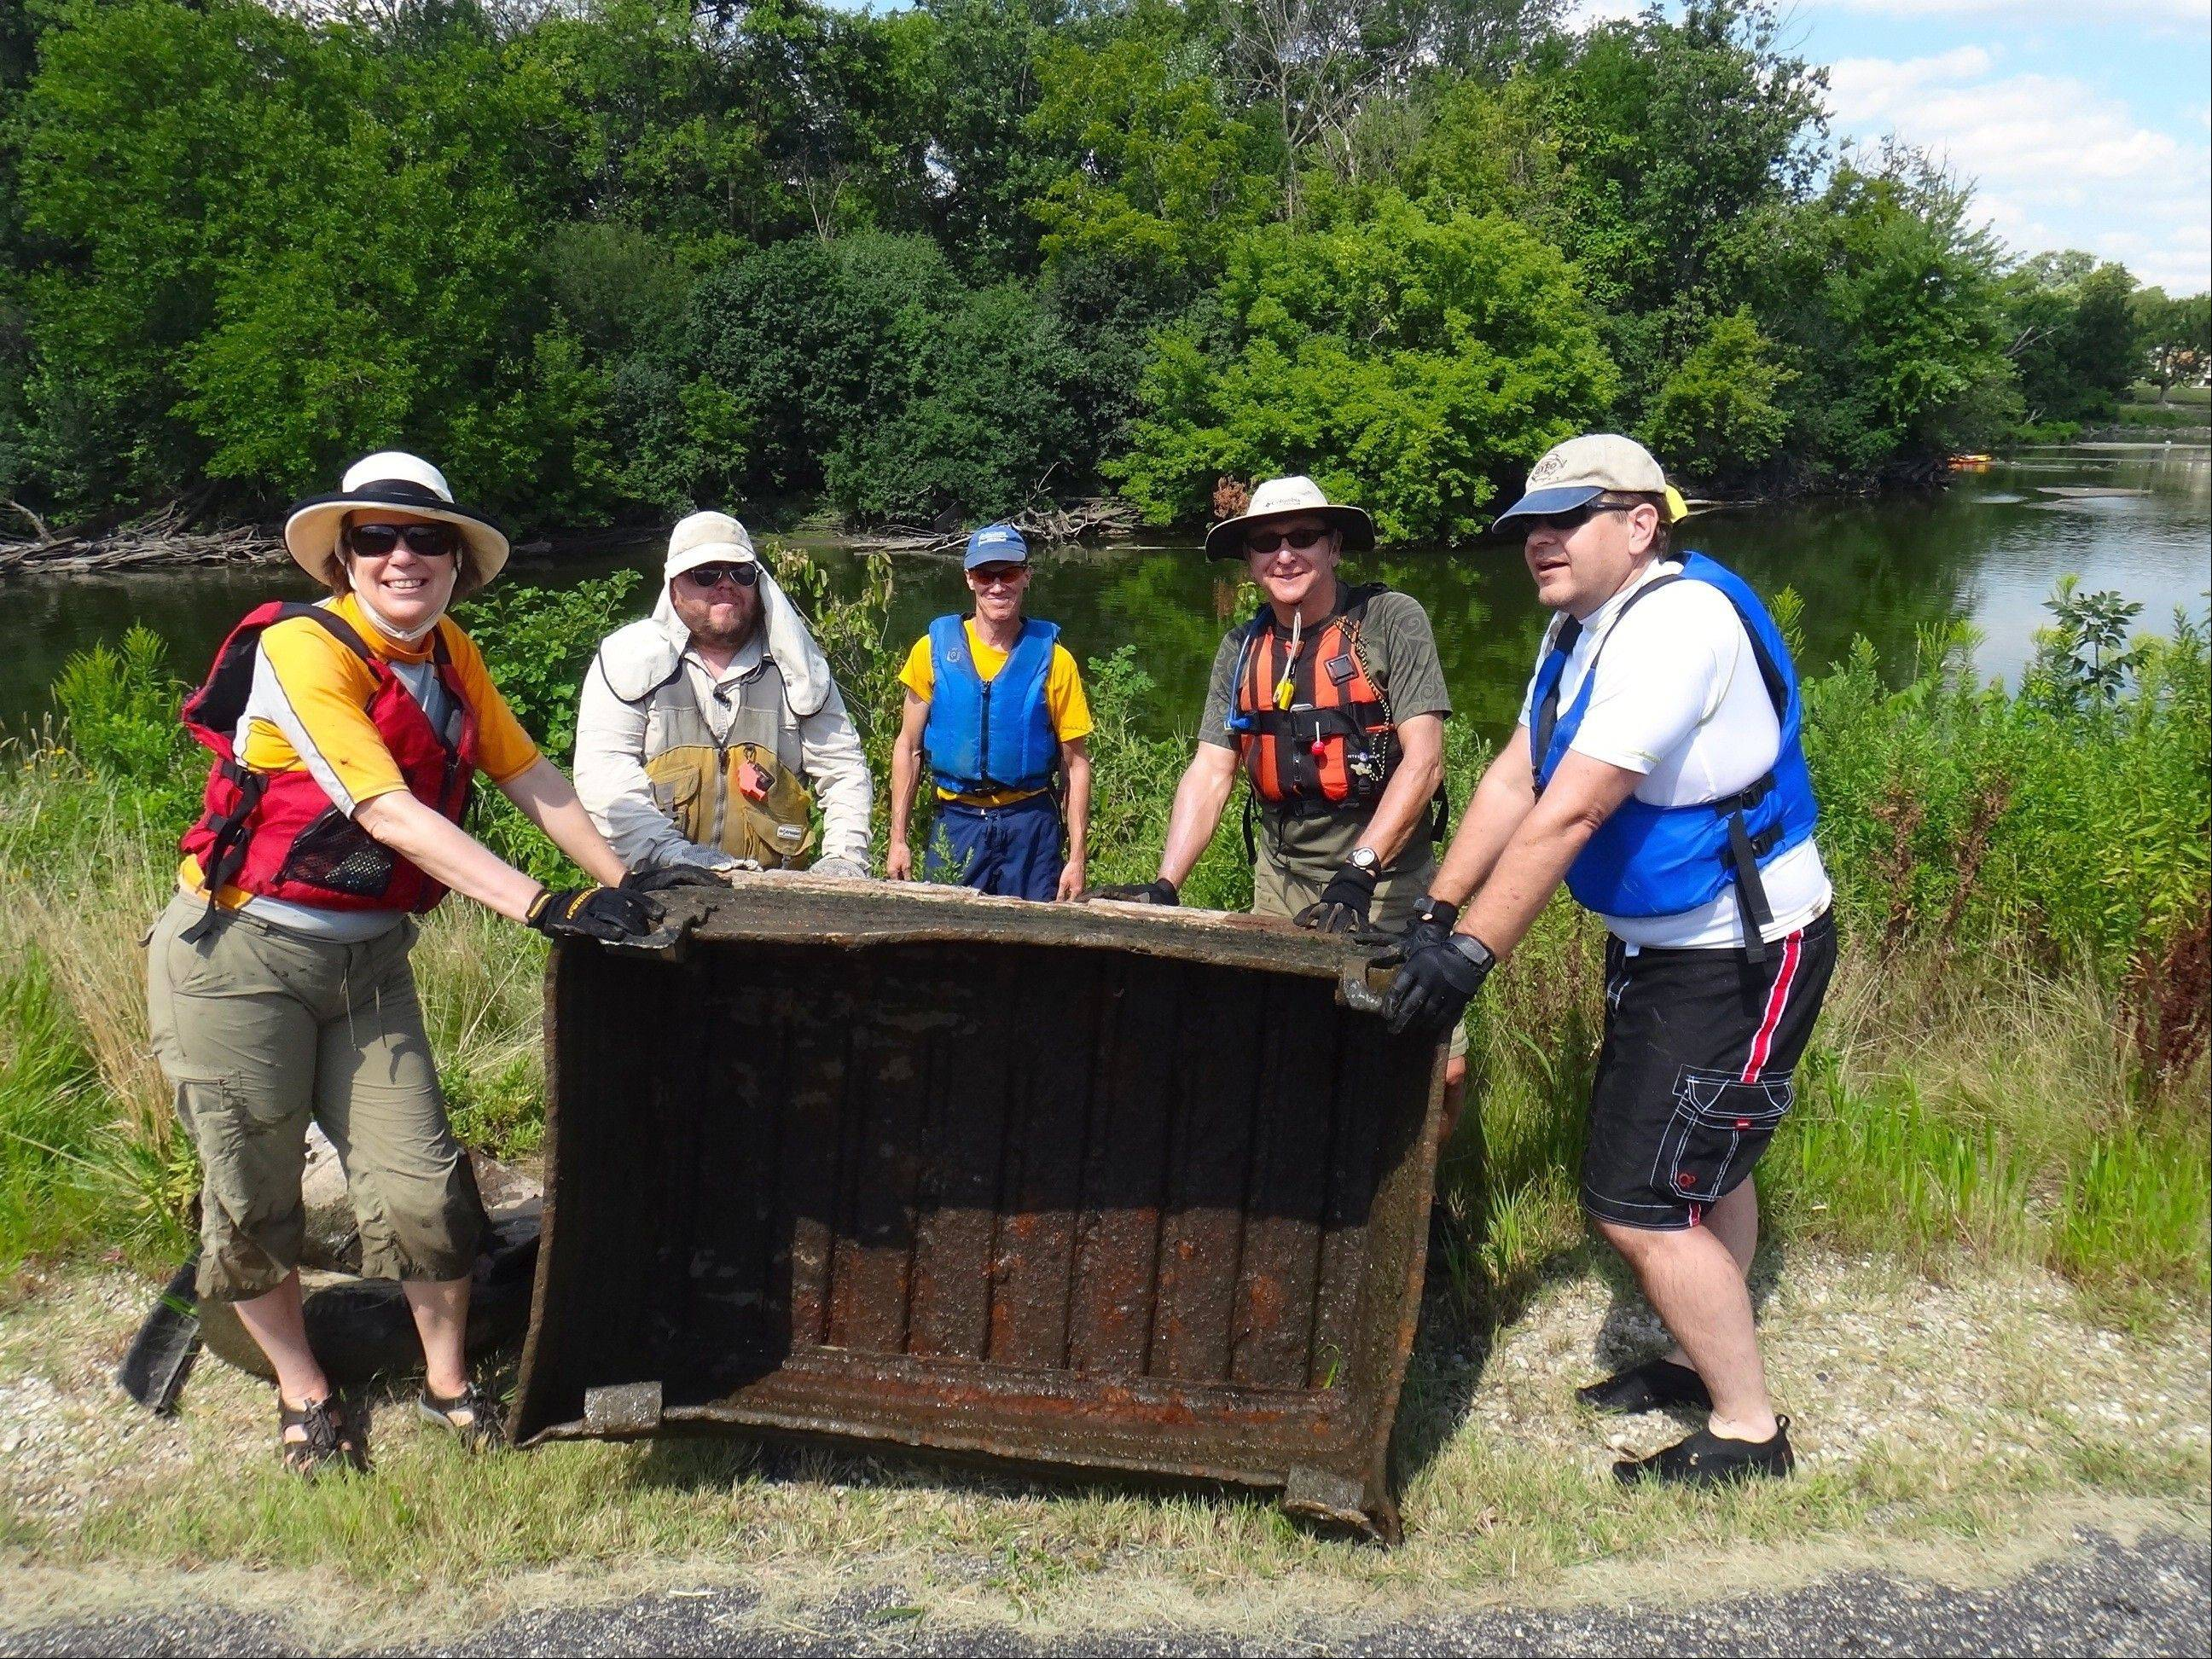 Diane Osgood, from left, Tom Eckels, Doug Bosco, Jim Berg and Gregg Szulczynski, all from the Prairie State Canoeists, helped to clean up the Fox River.